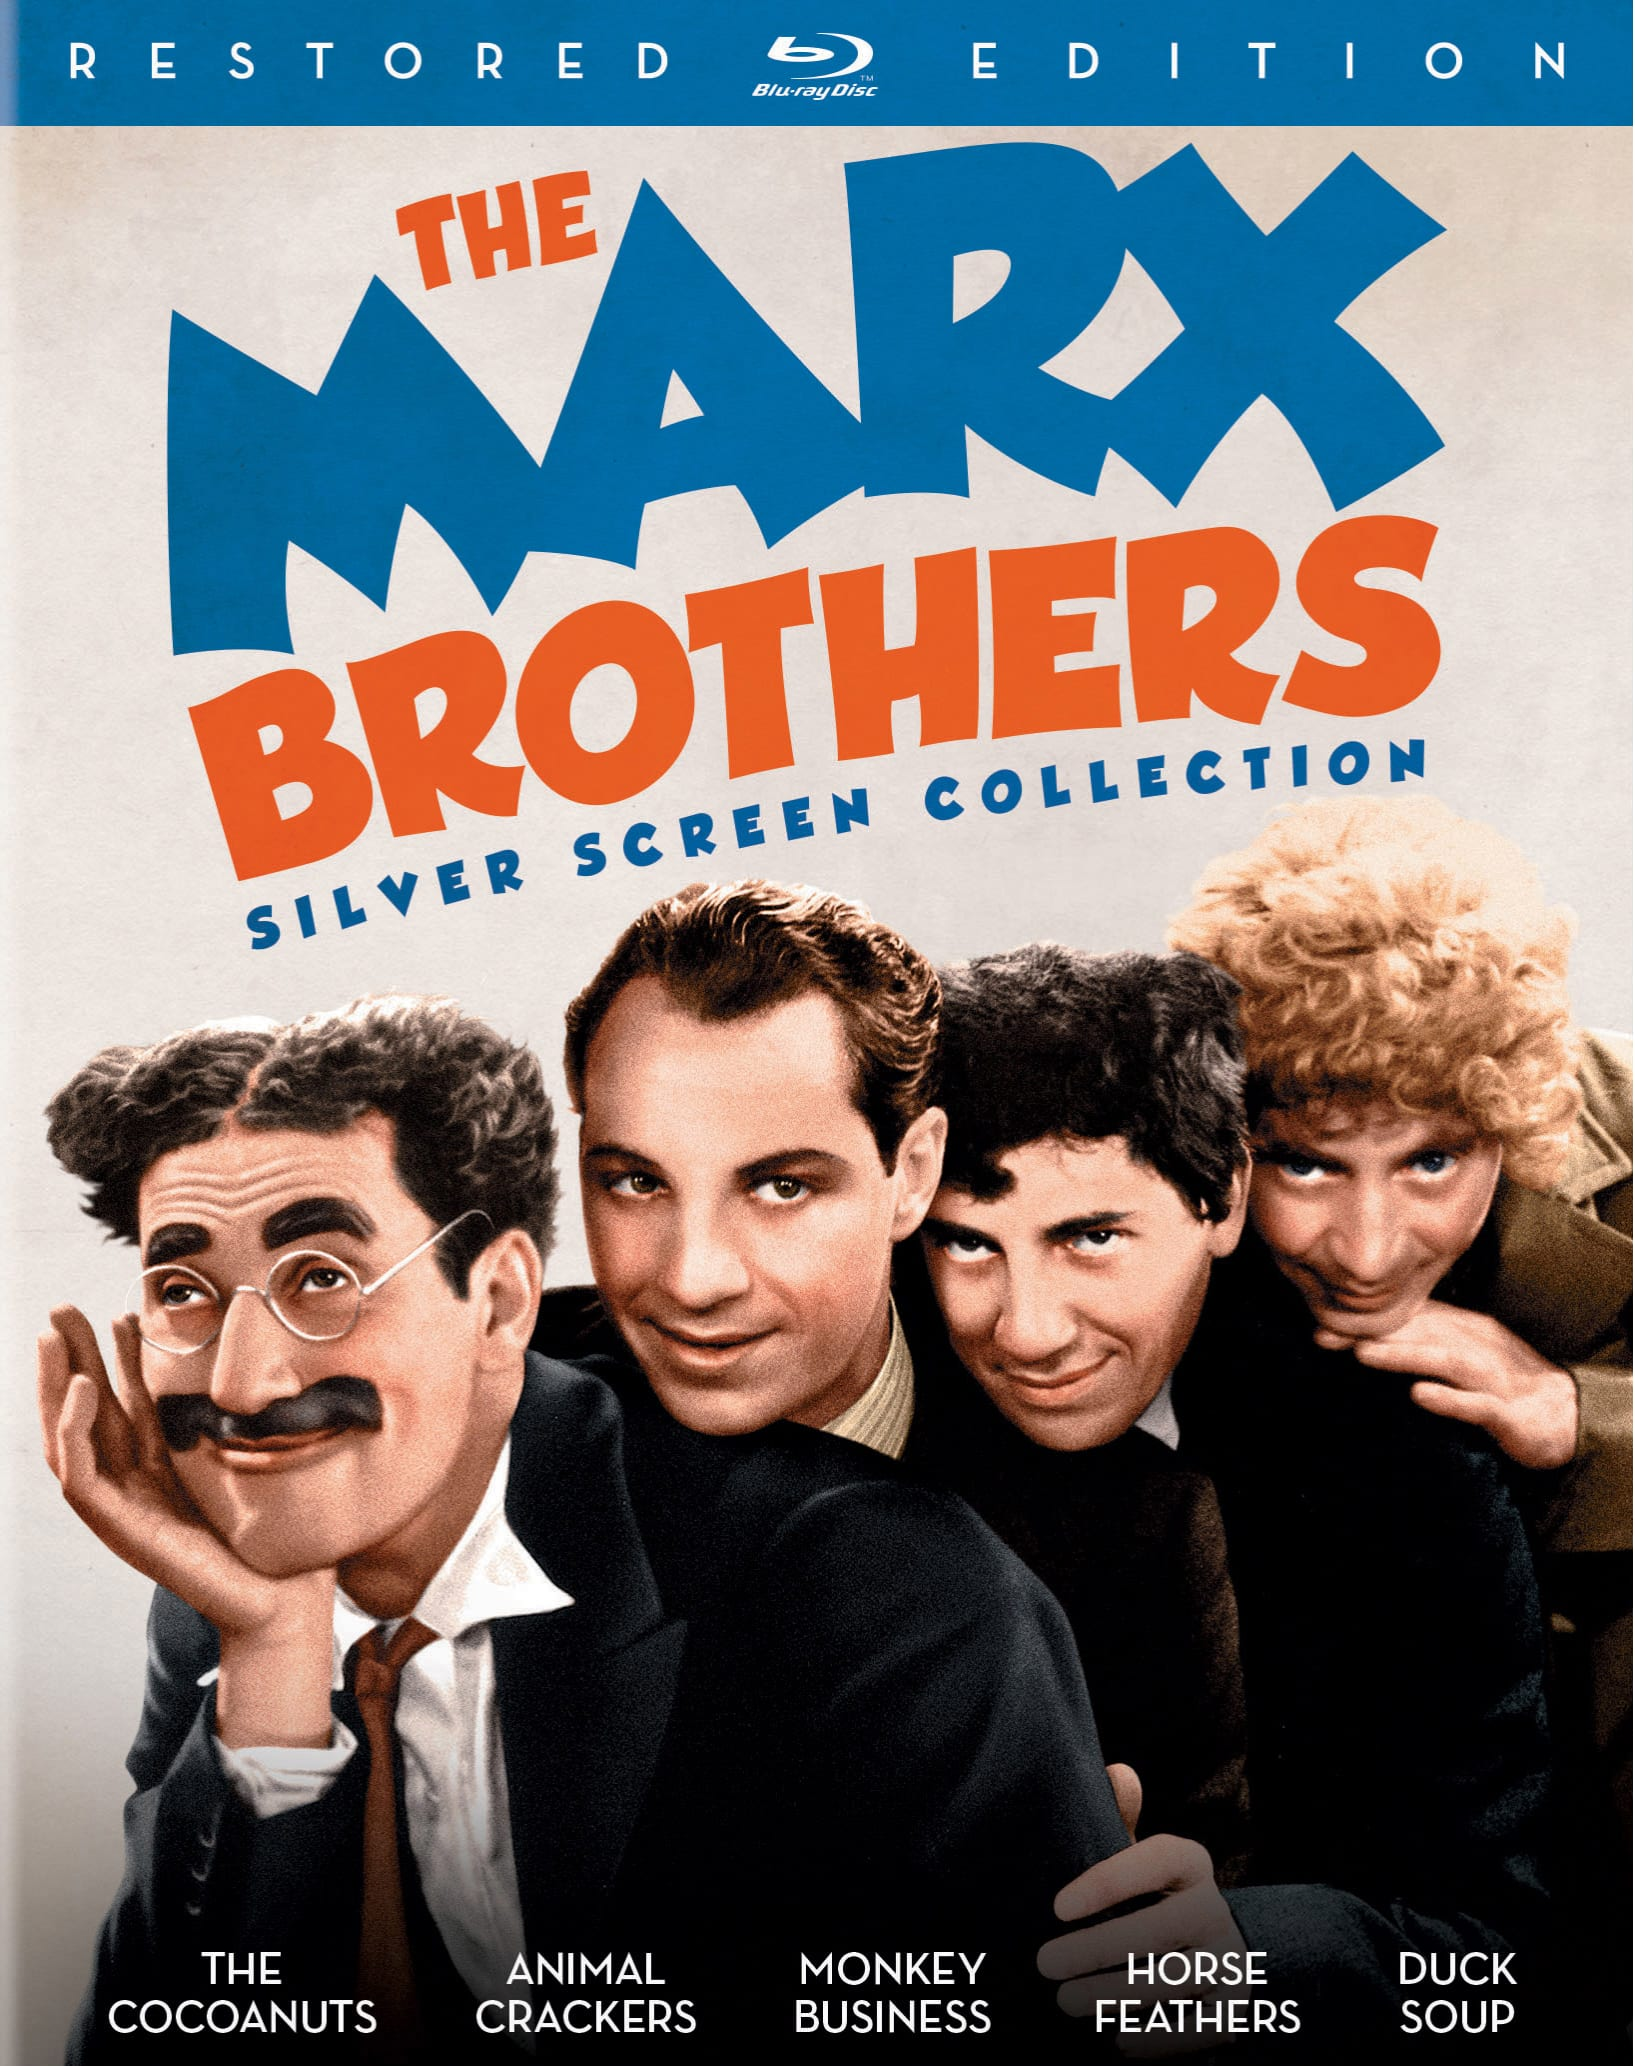 The Marx Brothers Silver Screen Collection (Restored) [Blu-ray]